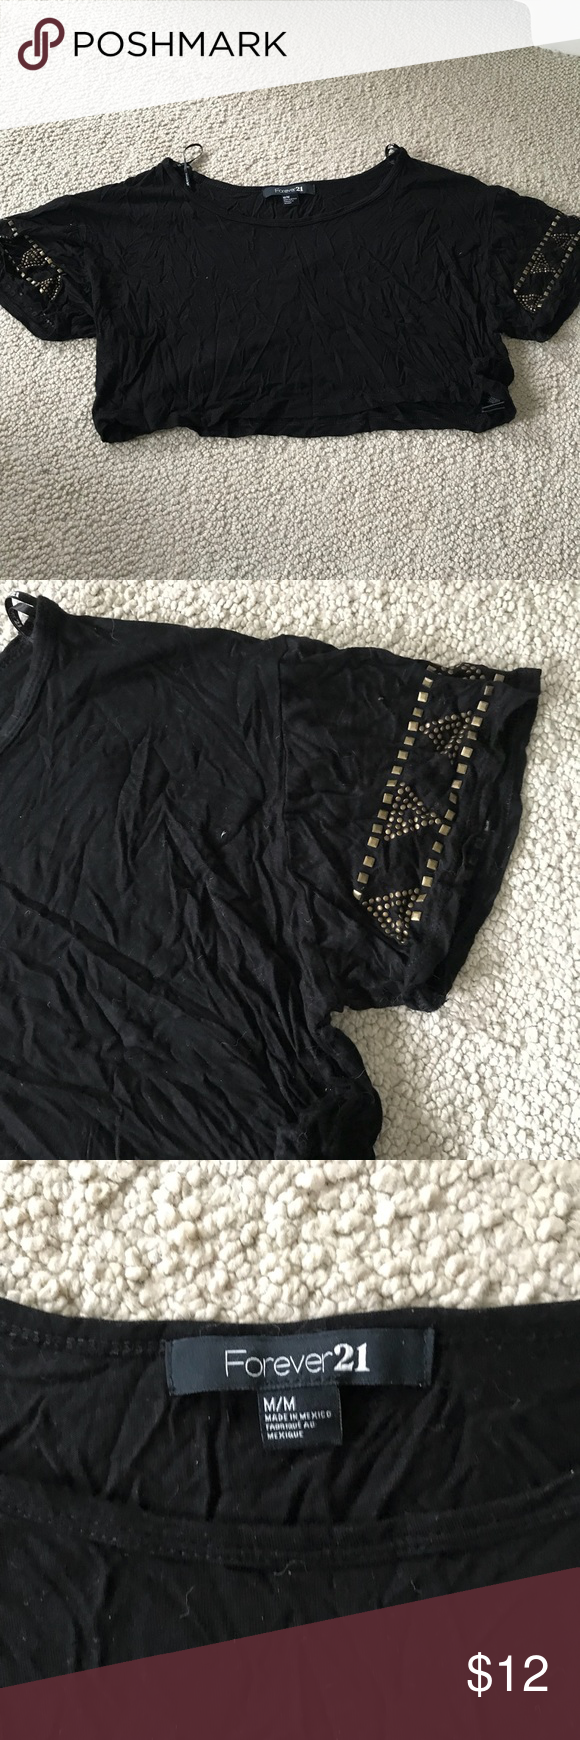 Forever cropped studded tee